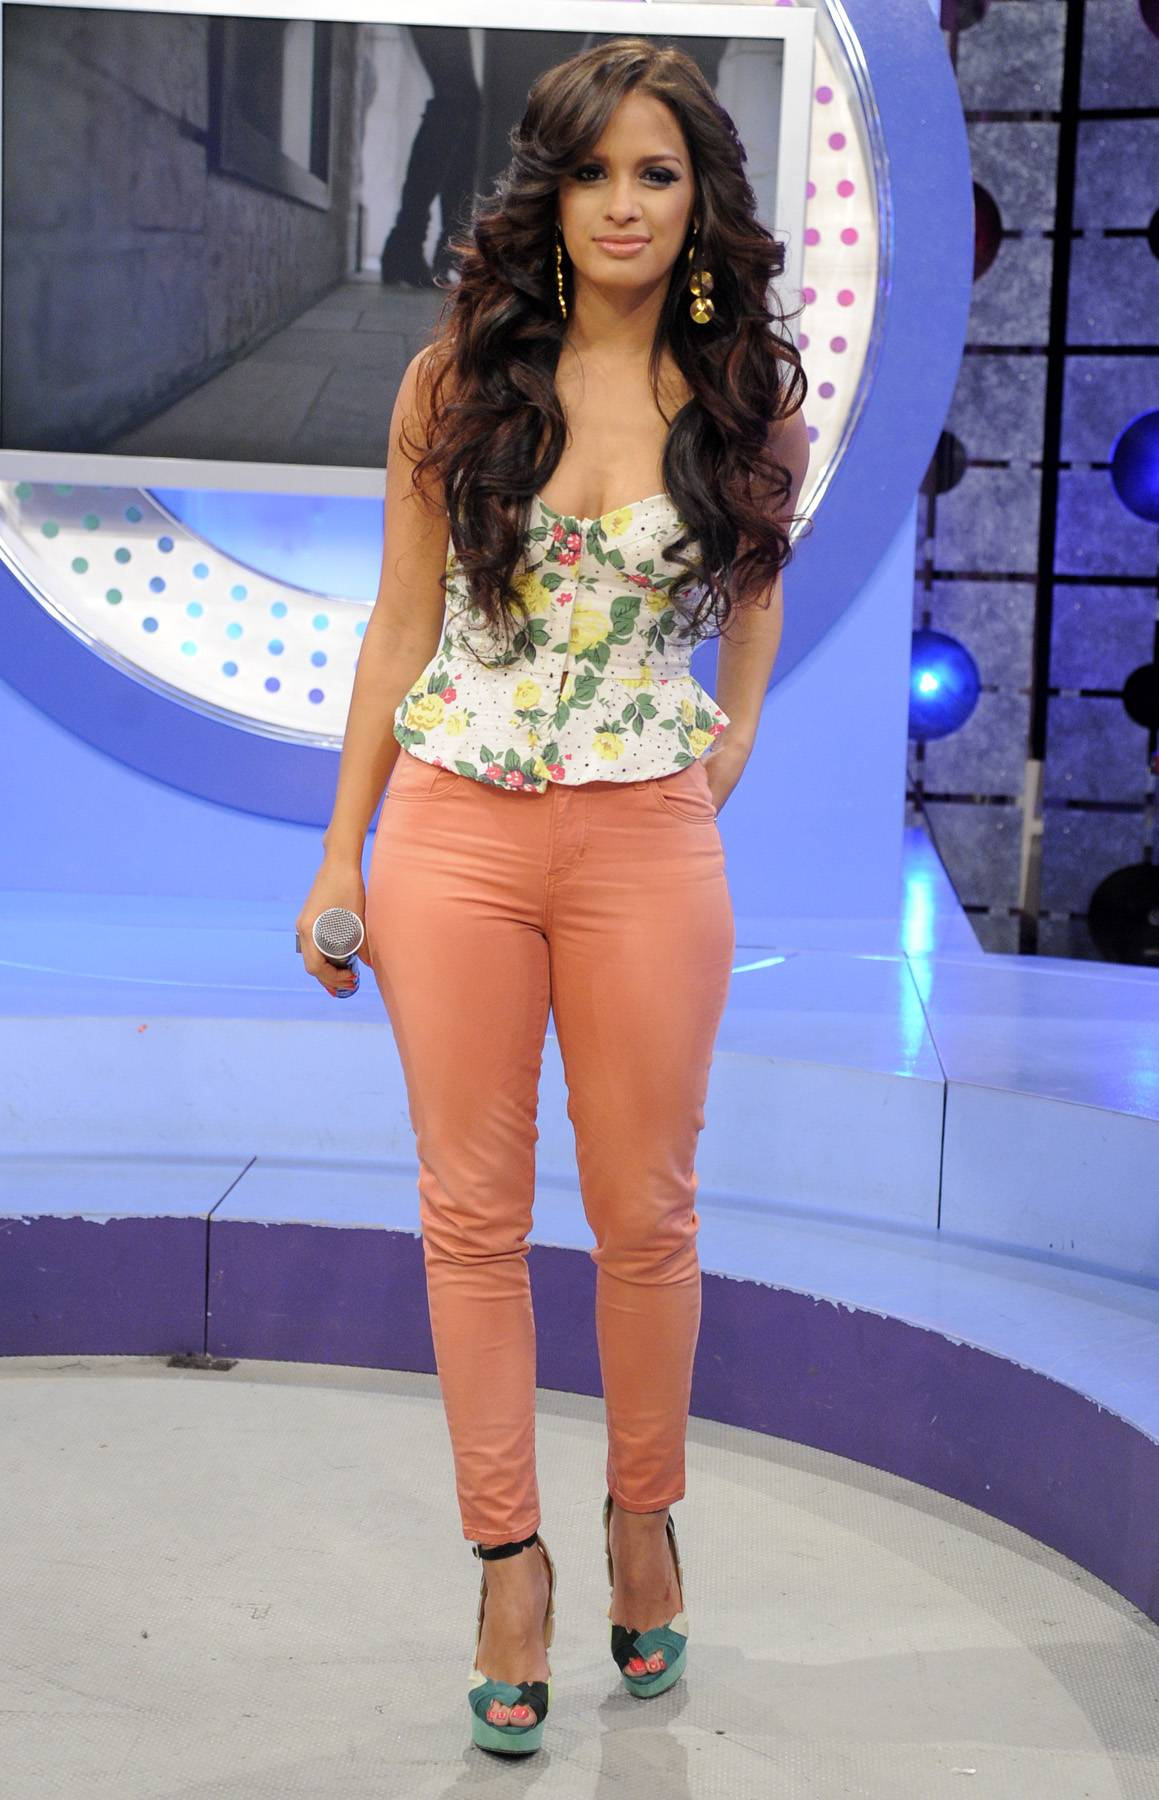 Peachy Keen - Colored denim is all the rage this spring and summer and Rocsi is ahead of the trend and is leading the pack when it comes to what's hot and what's not.(Photo: John Ricard/BET)